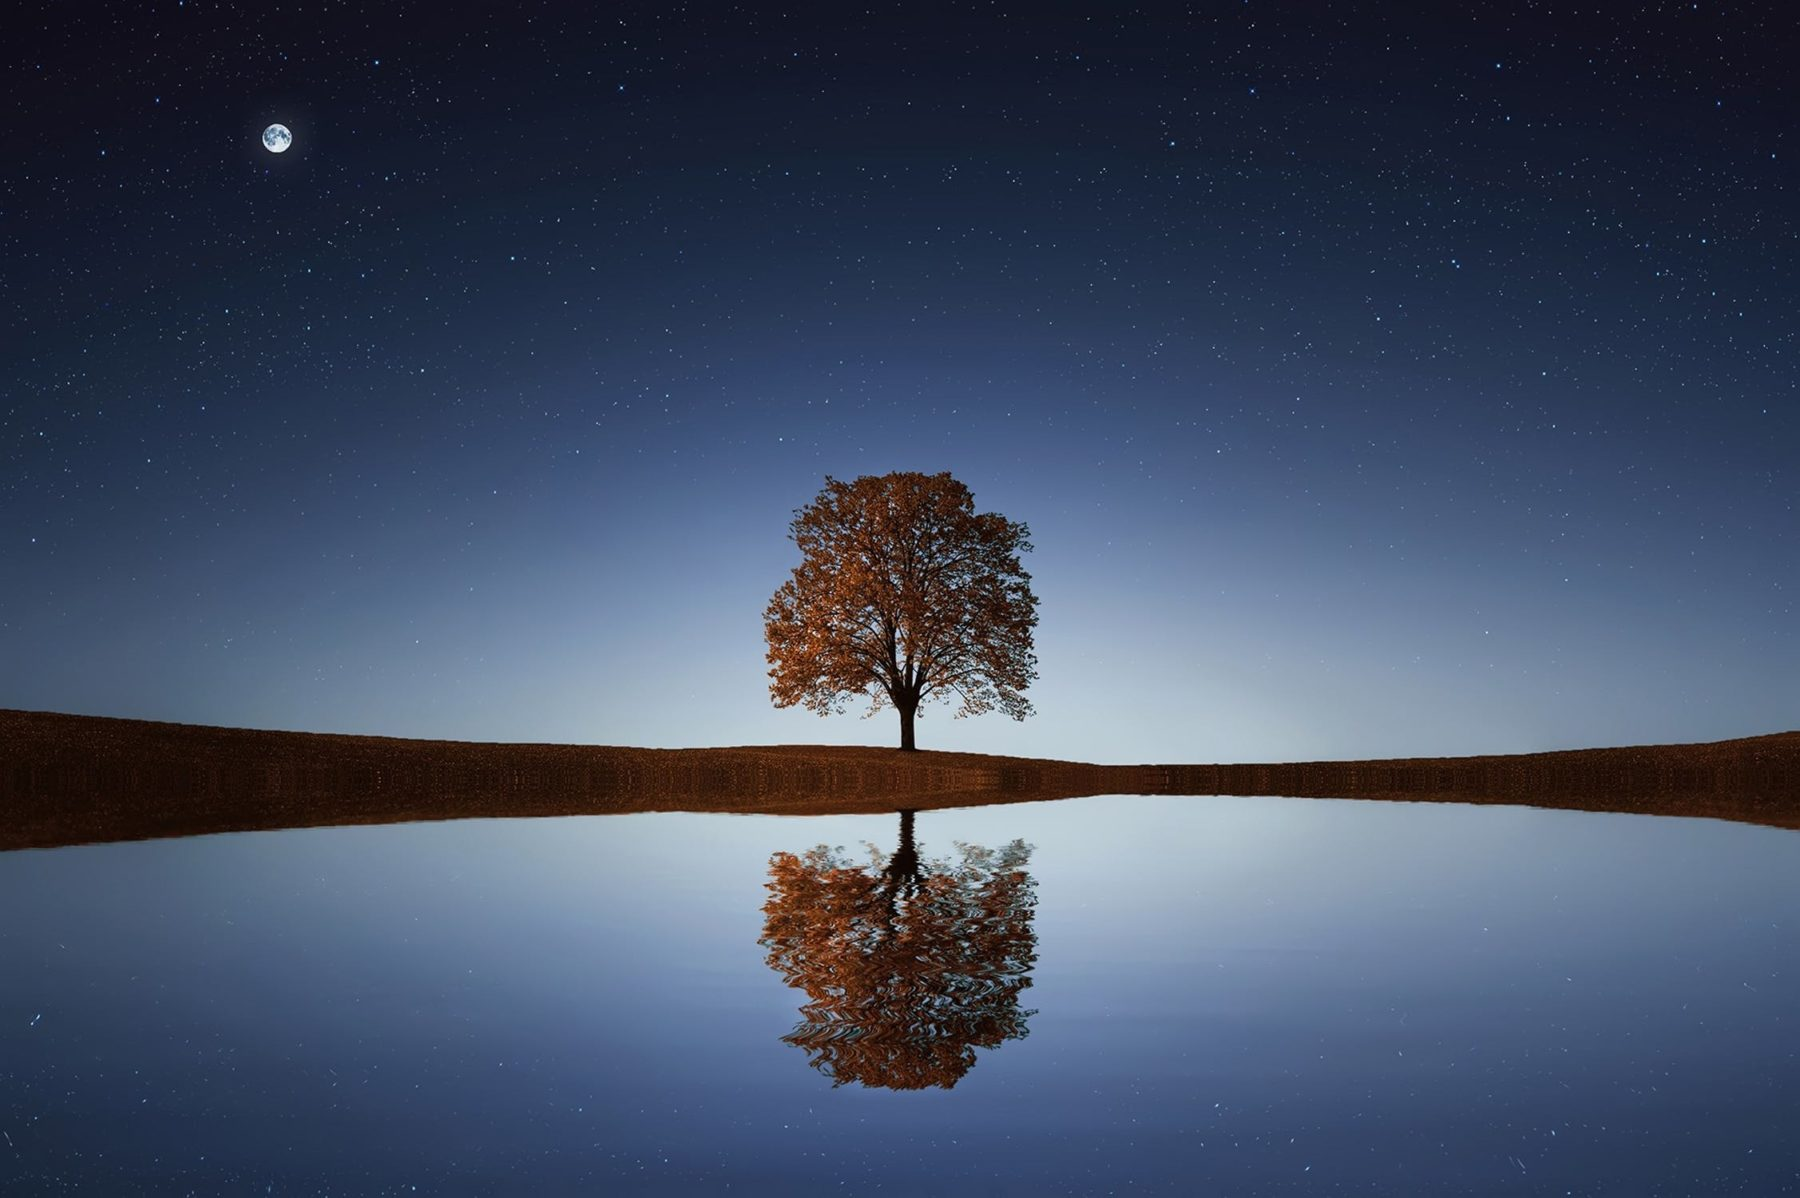 tree with reflection in water